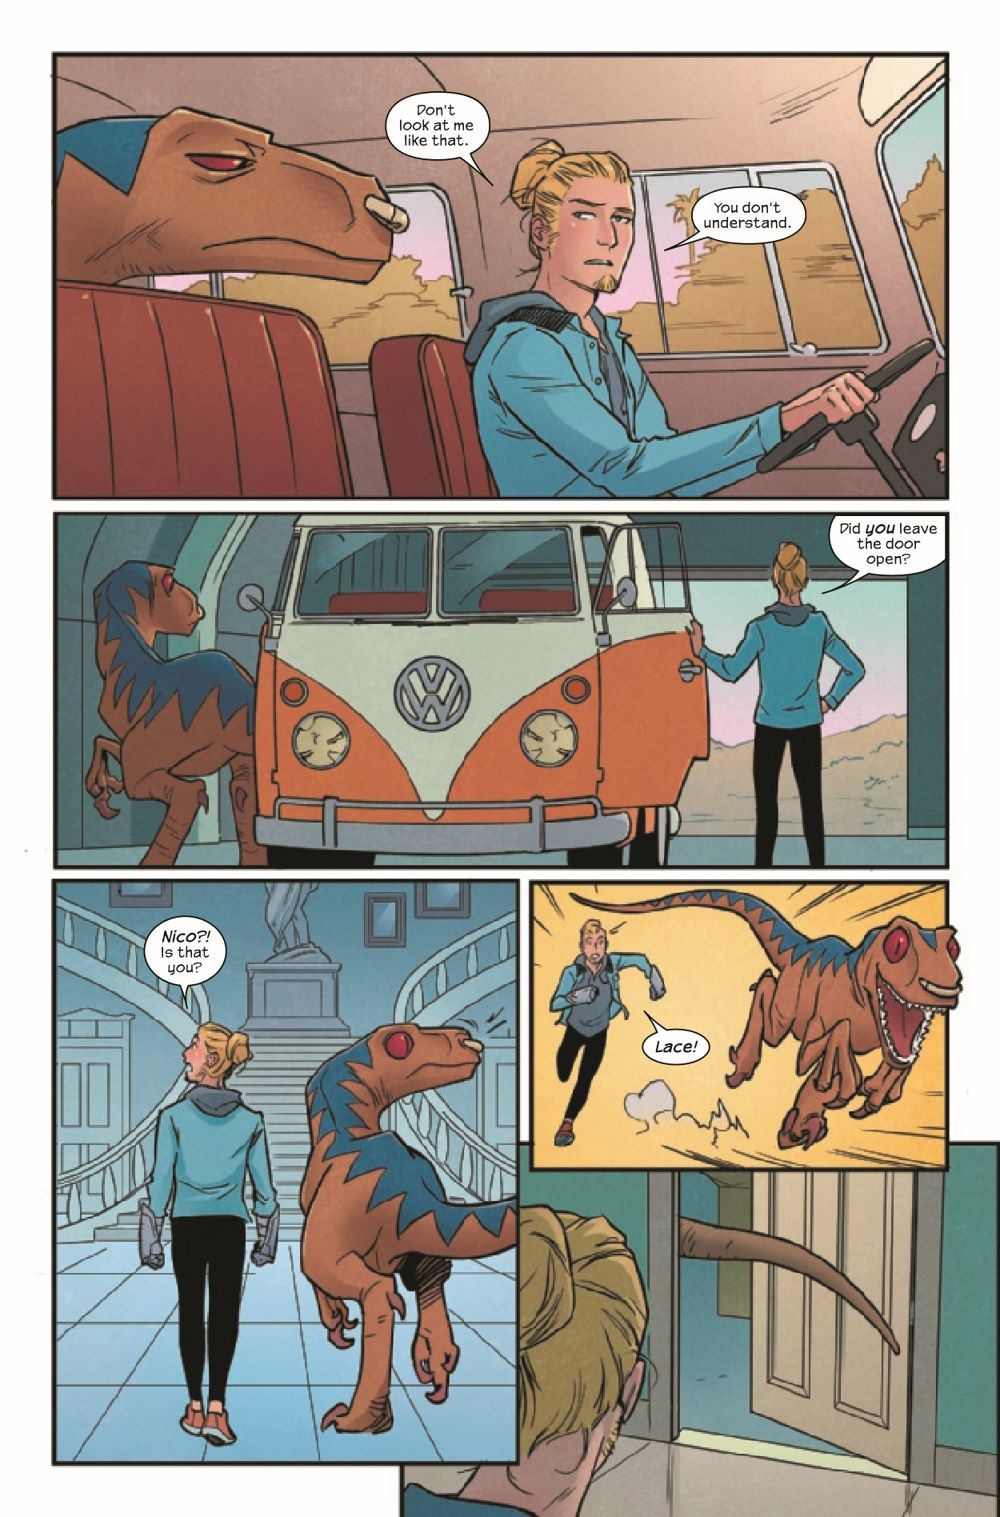 RUNAWY2017036_Preview-3 ComicList Previews: RUNAWAYS #36